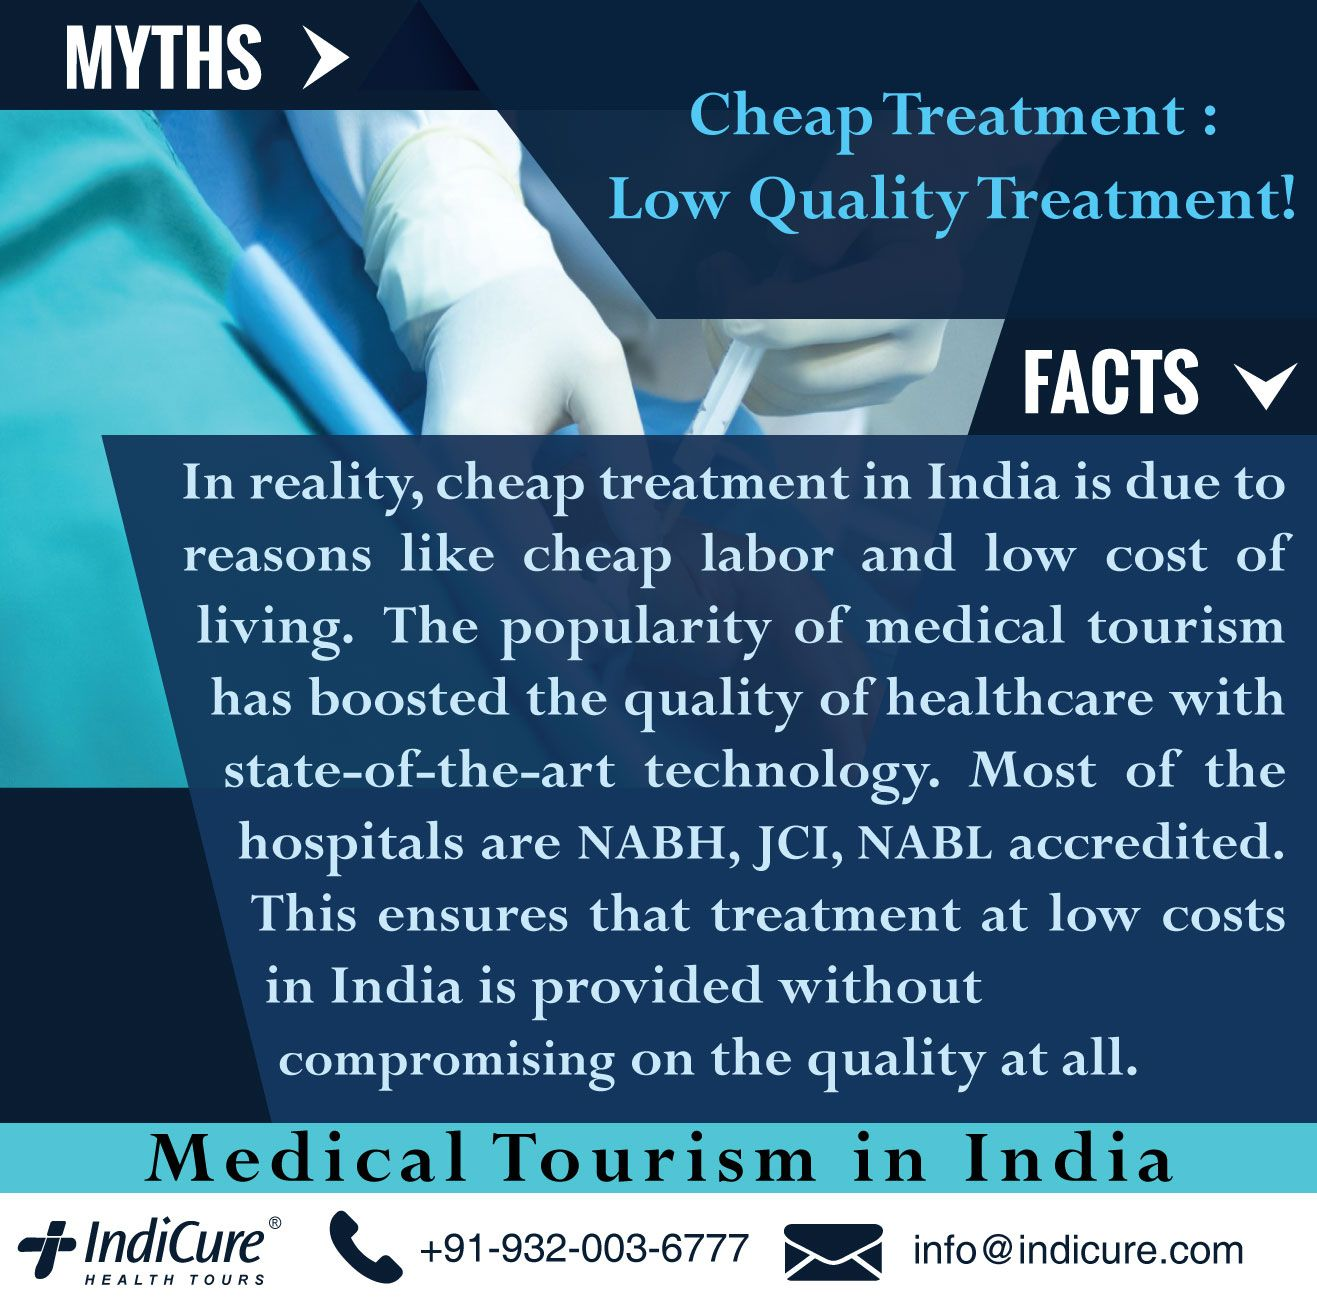 Pin by IndiCure Health Tours on Medical Tourism India